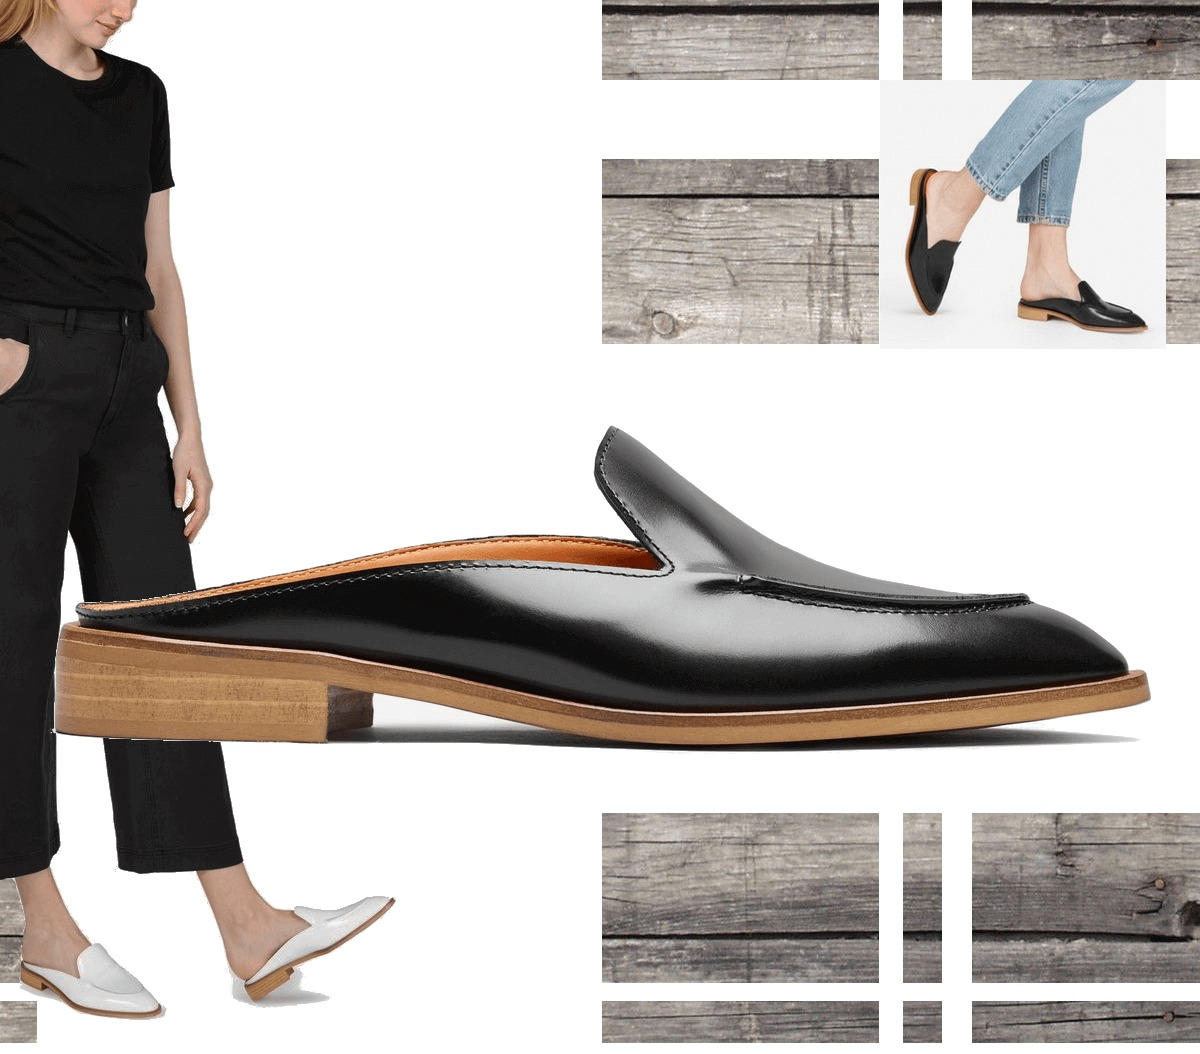 Everlane Modern Loafer Mule